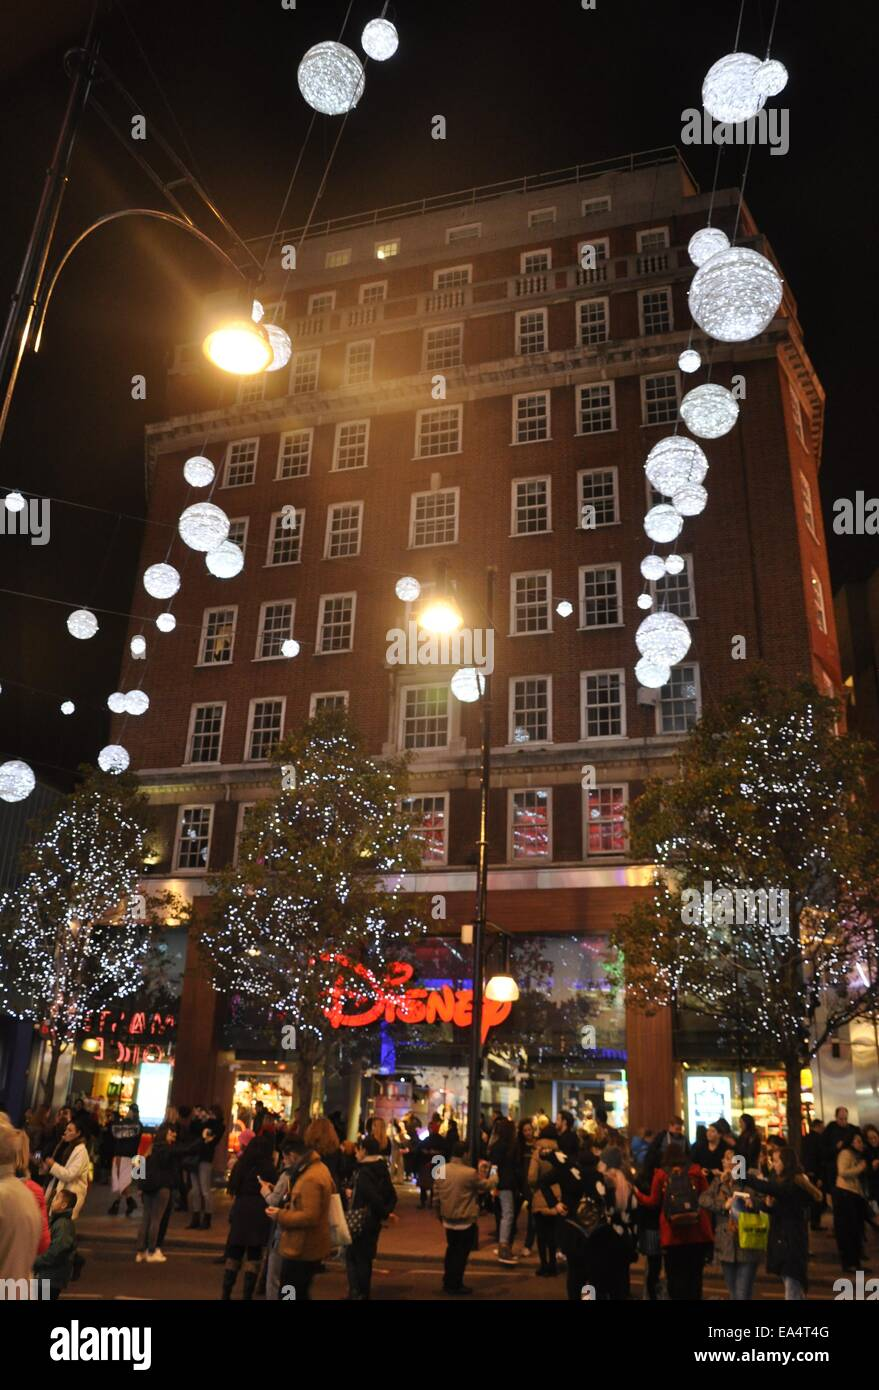 shoppers outside oxford street disney store with christmas lights at night time london - Christmas Lights Store